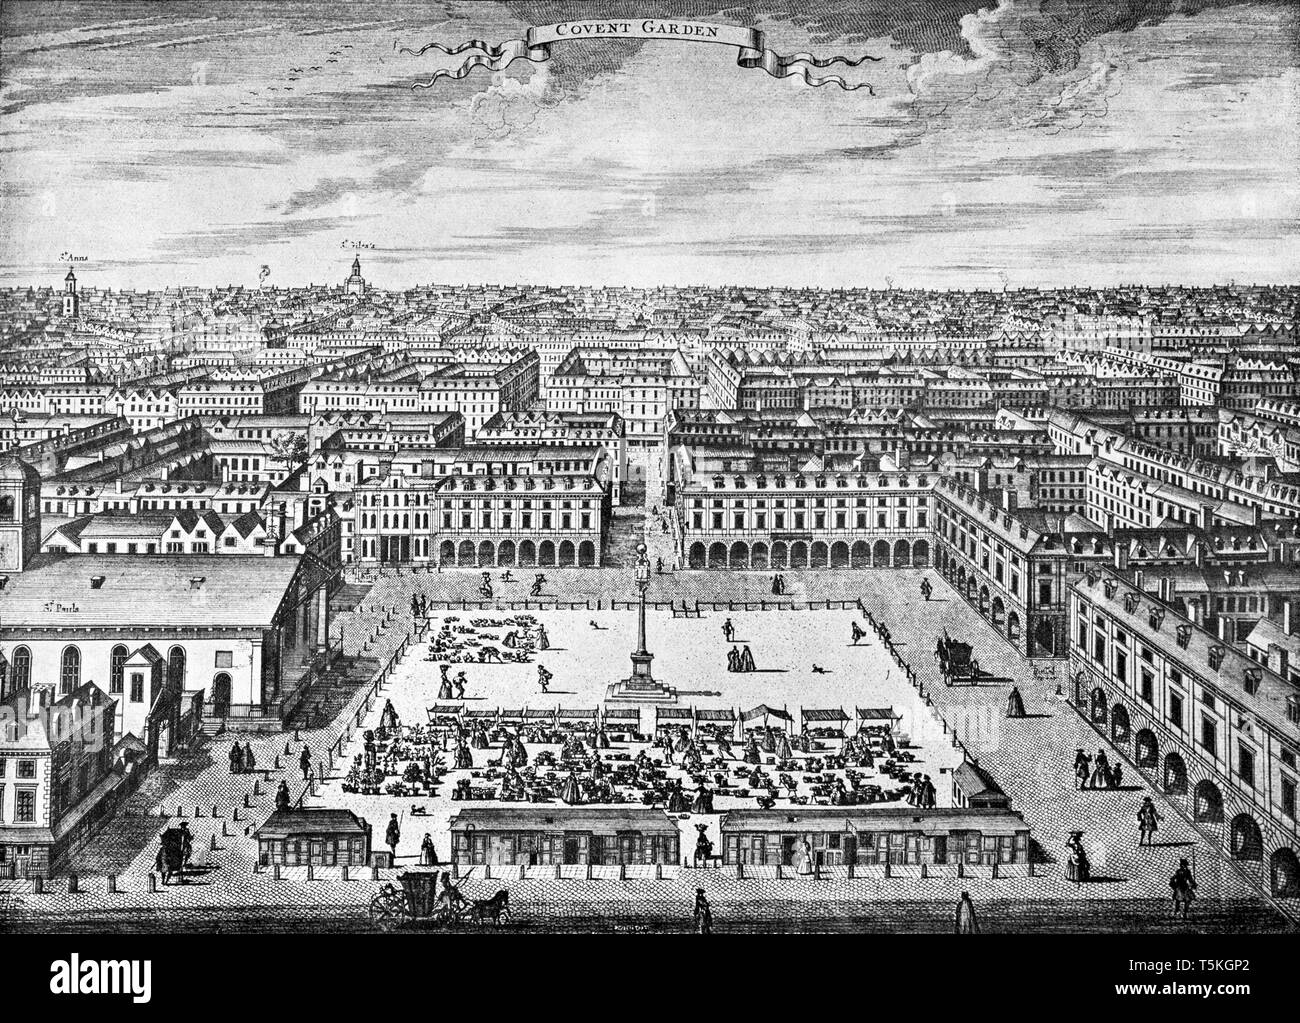 General view of Covent Garden looking north, circa 1720, from an engraving by Sutton Nicholls Stock Photo